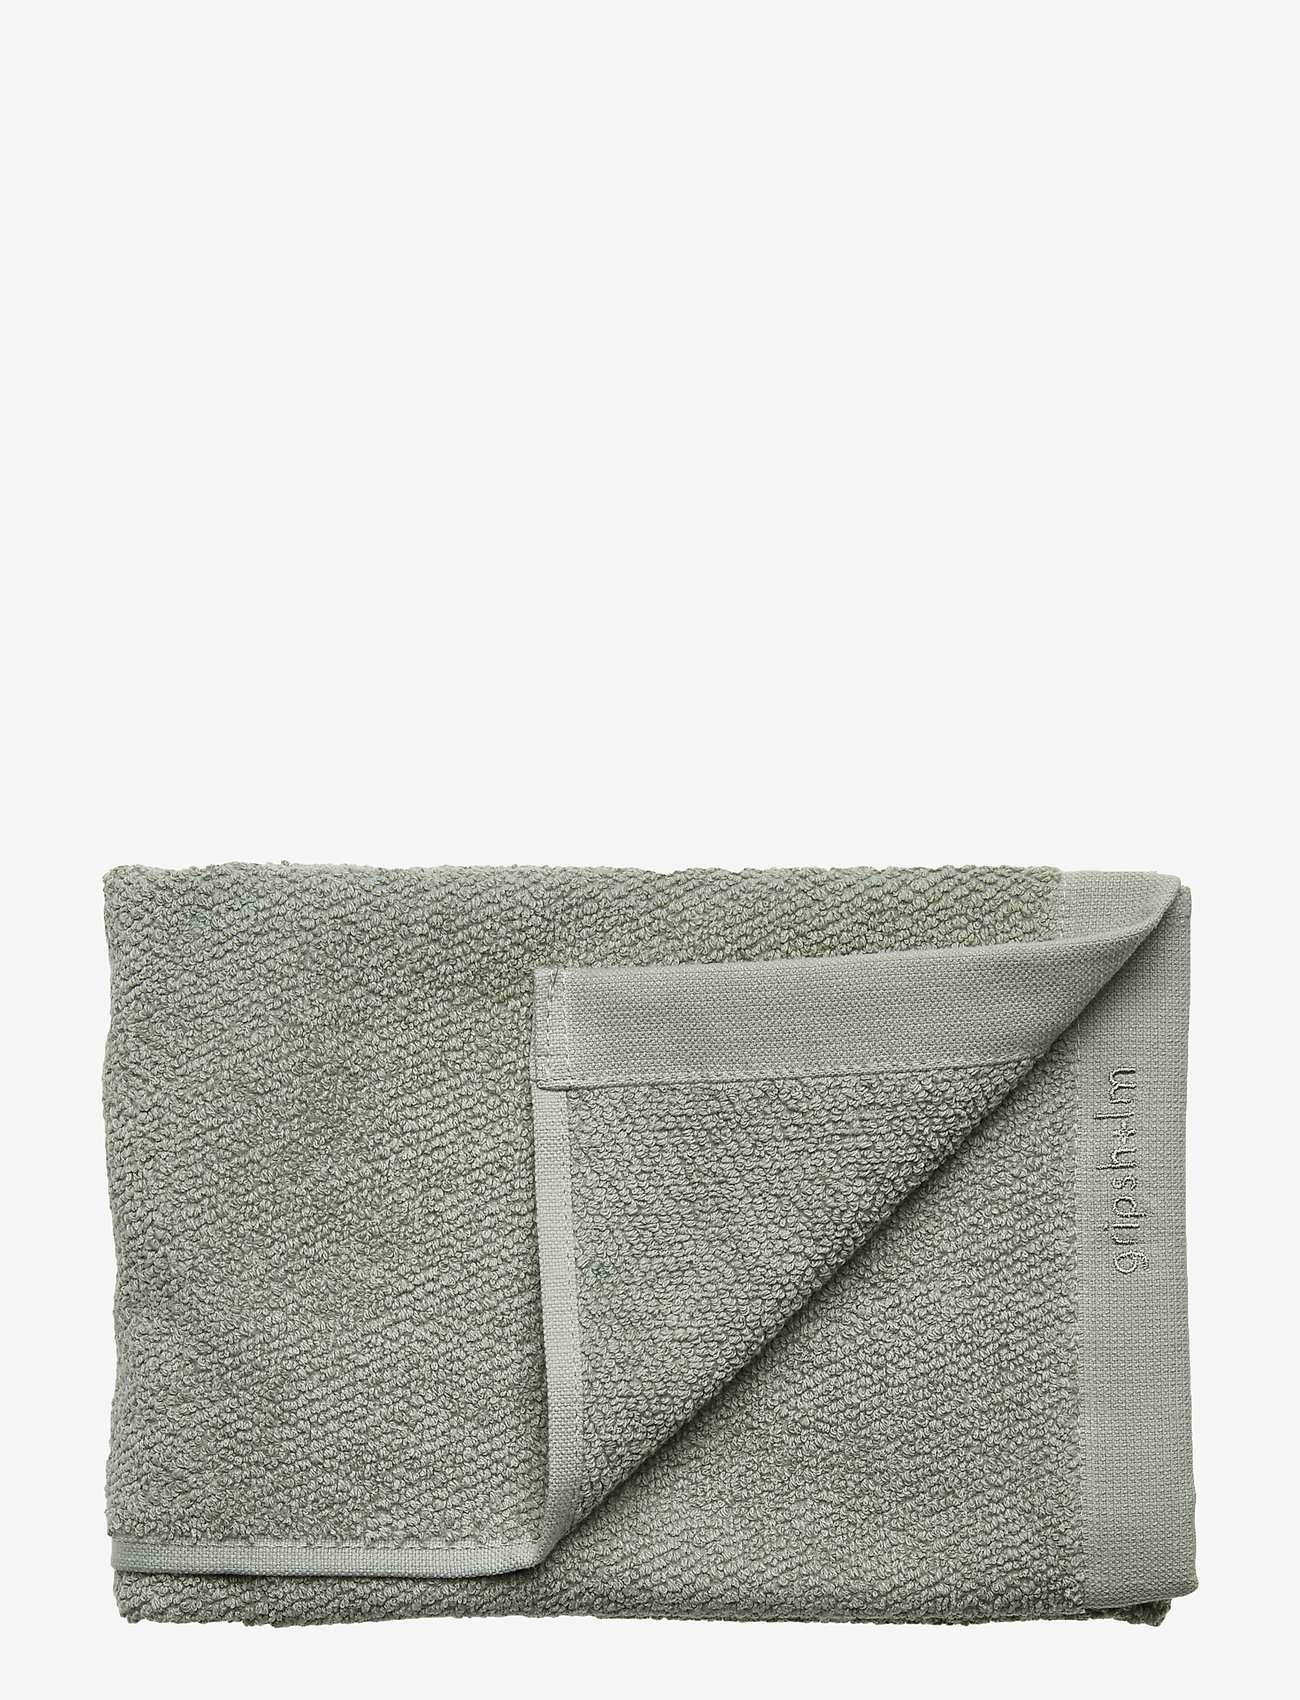 Gripsholm - TOWEL COTTON LINEN - towels - lily green - 0